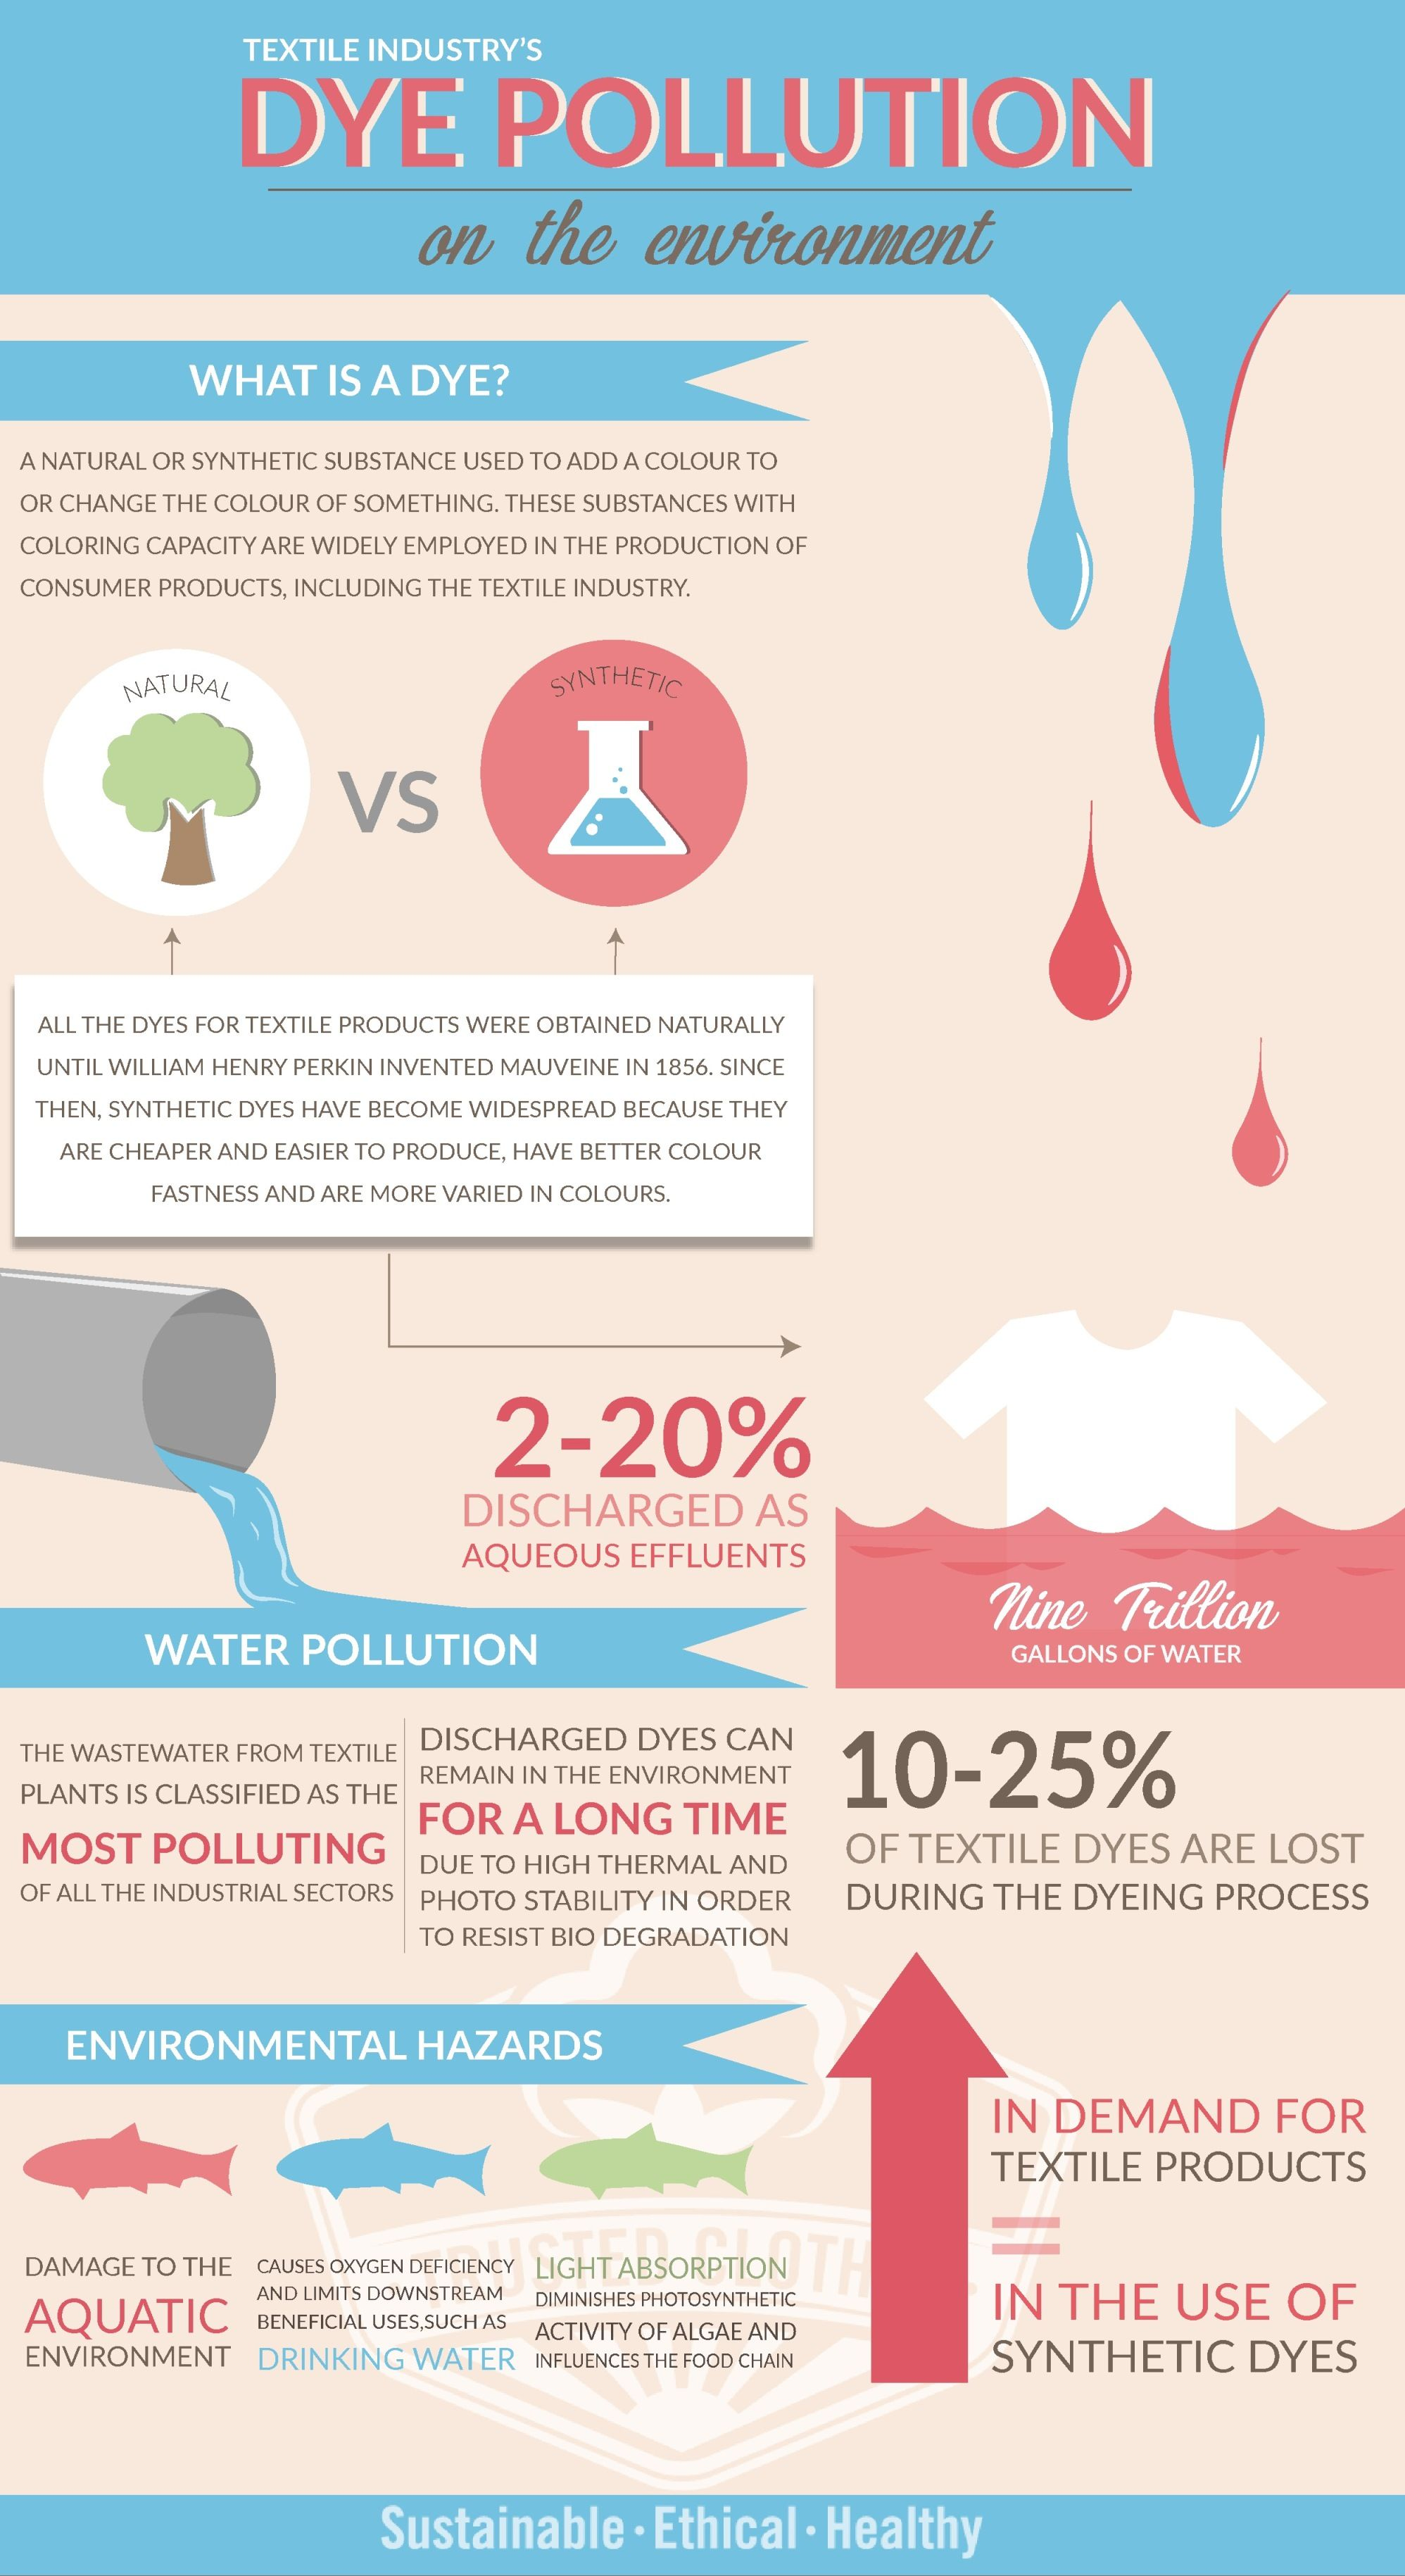 5040ed0e34 An infographic on how the textile industry's dye pollution impacts ...